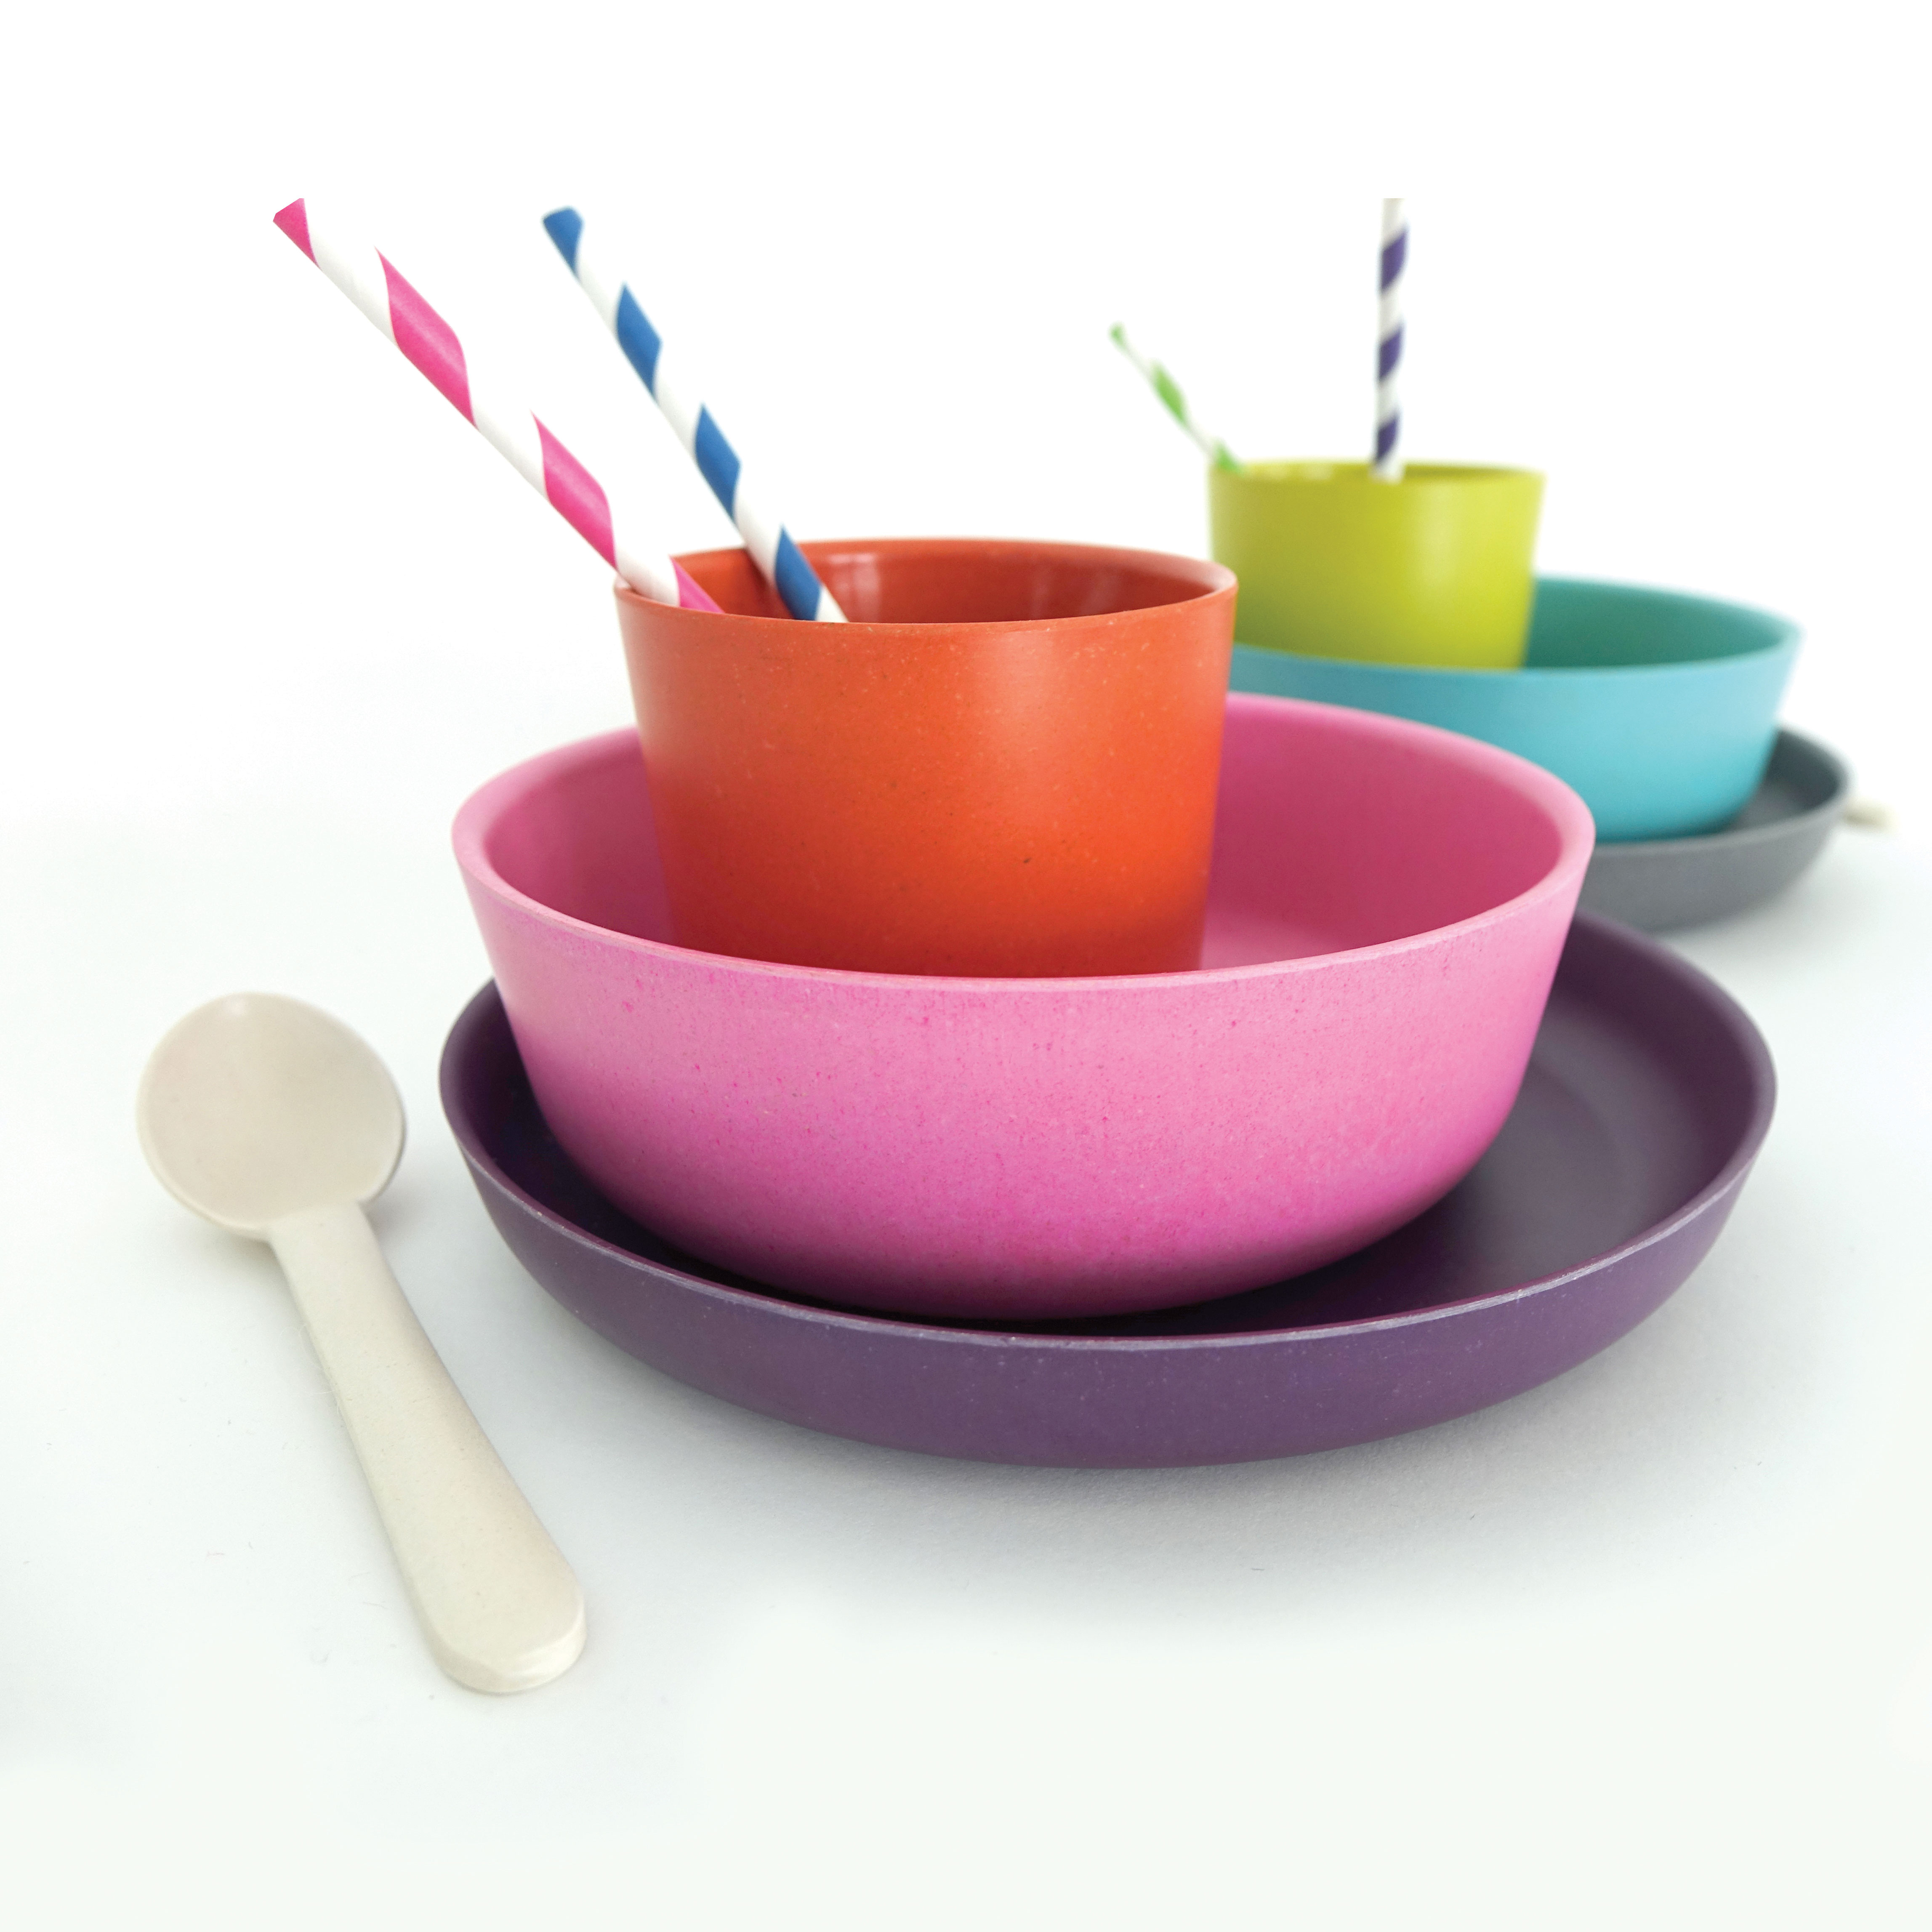 kait schulhof san diego sustainability bamboo kids dinner set bowl cup plate straws spoon